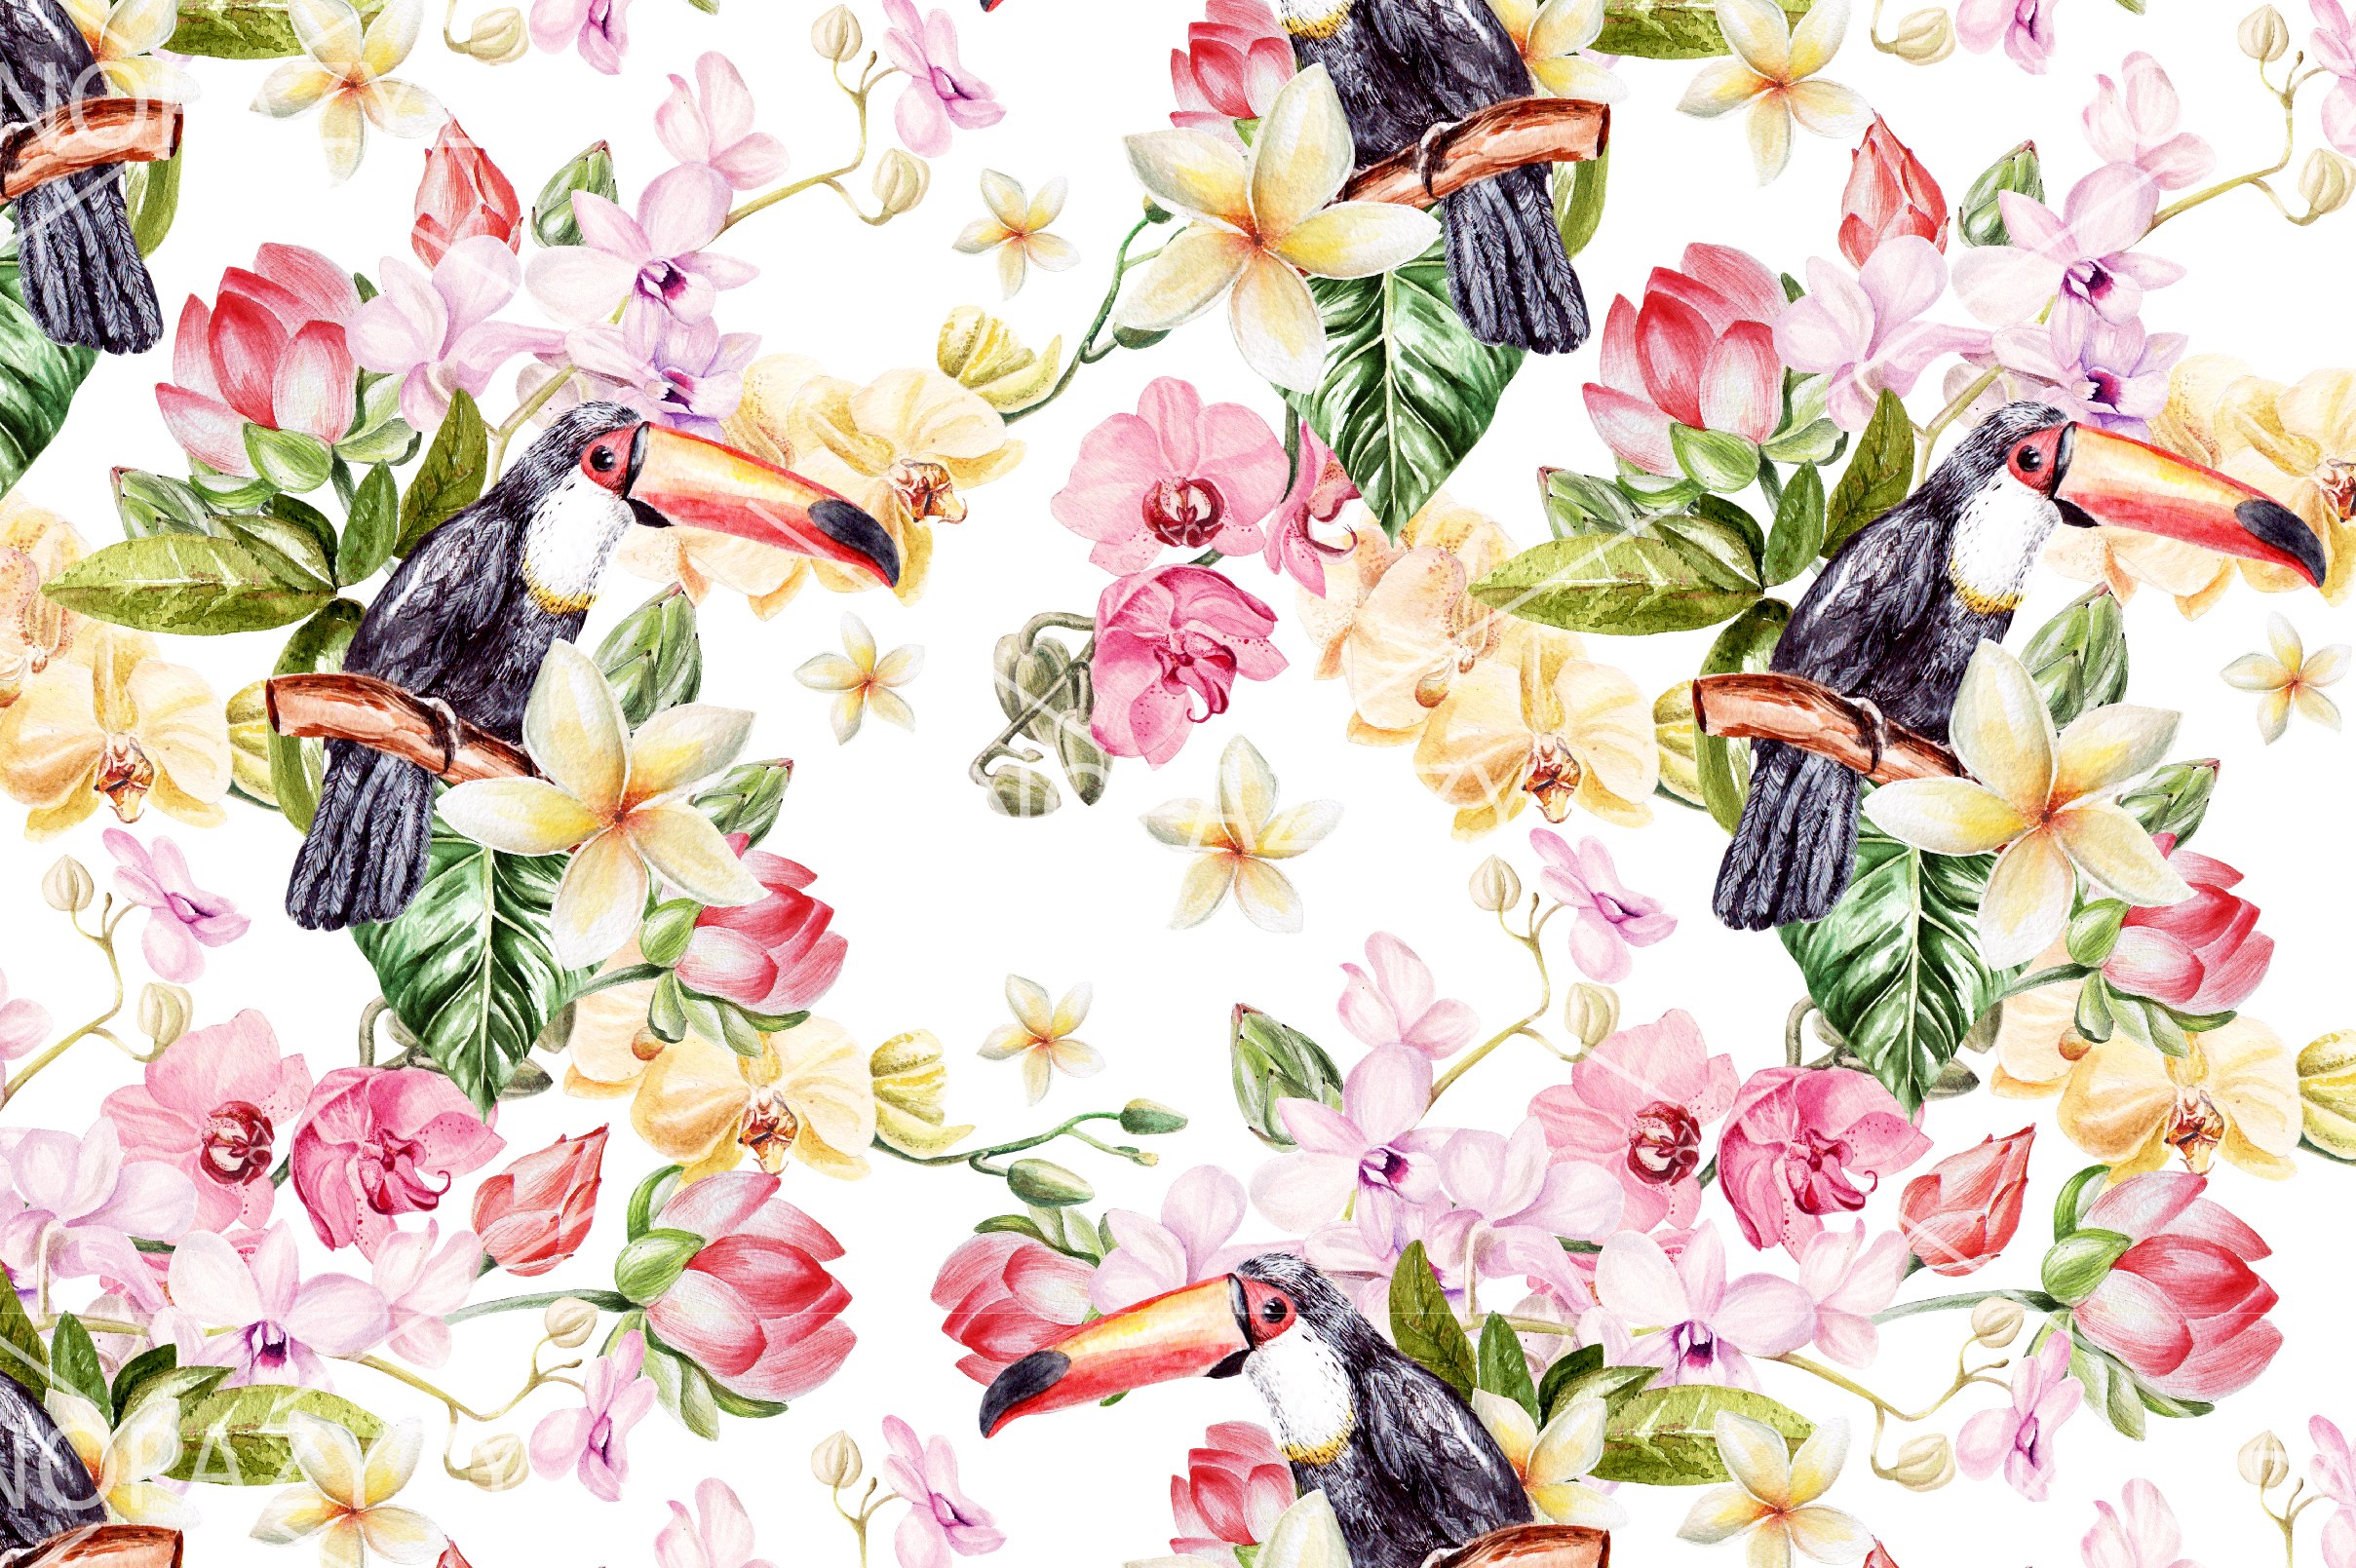 16 Hand Drawn Watercolor Pattern example image 11